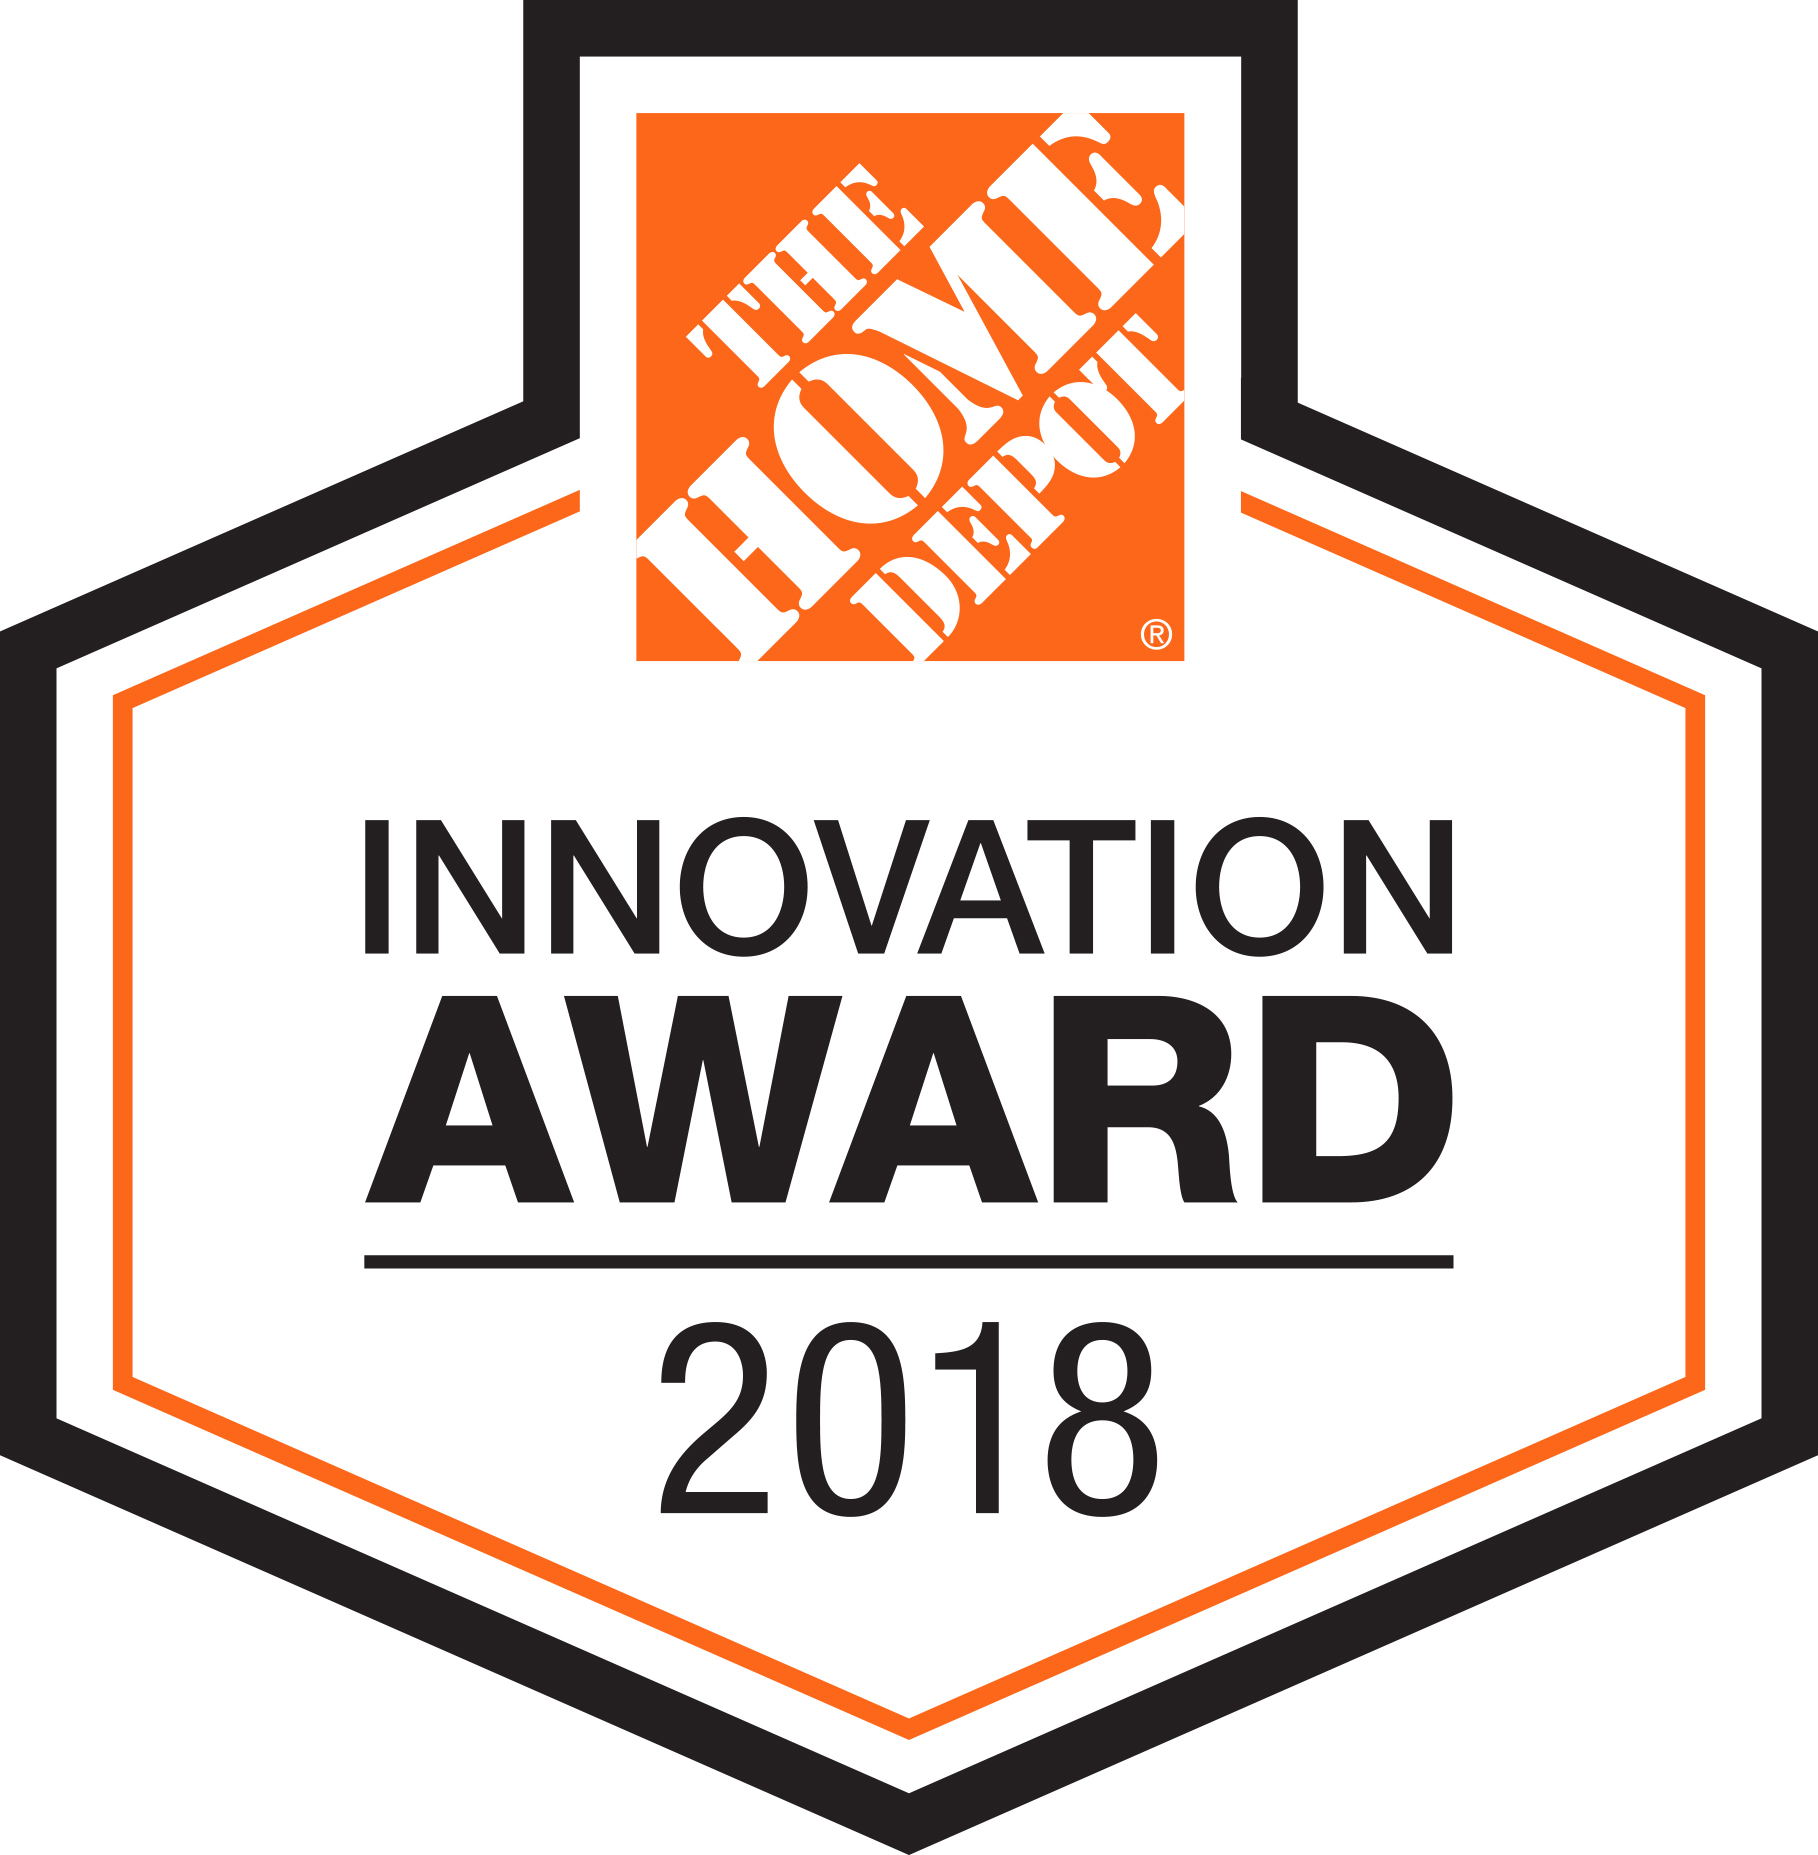 Home Depot Announces 2018 Innovation Award Winners